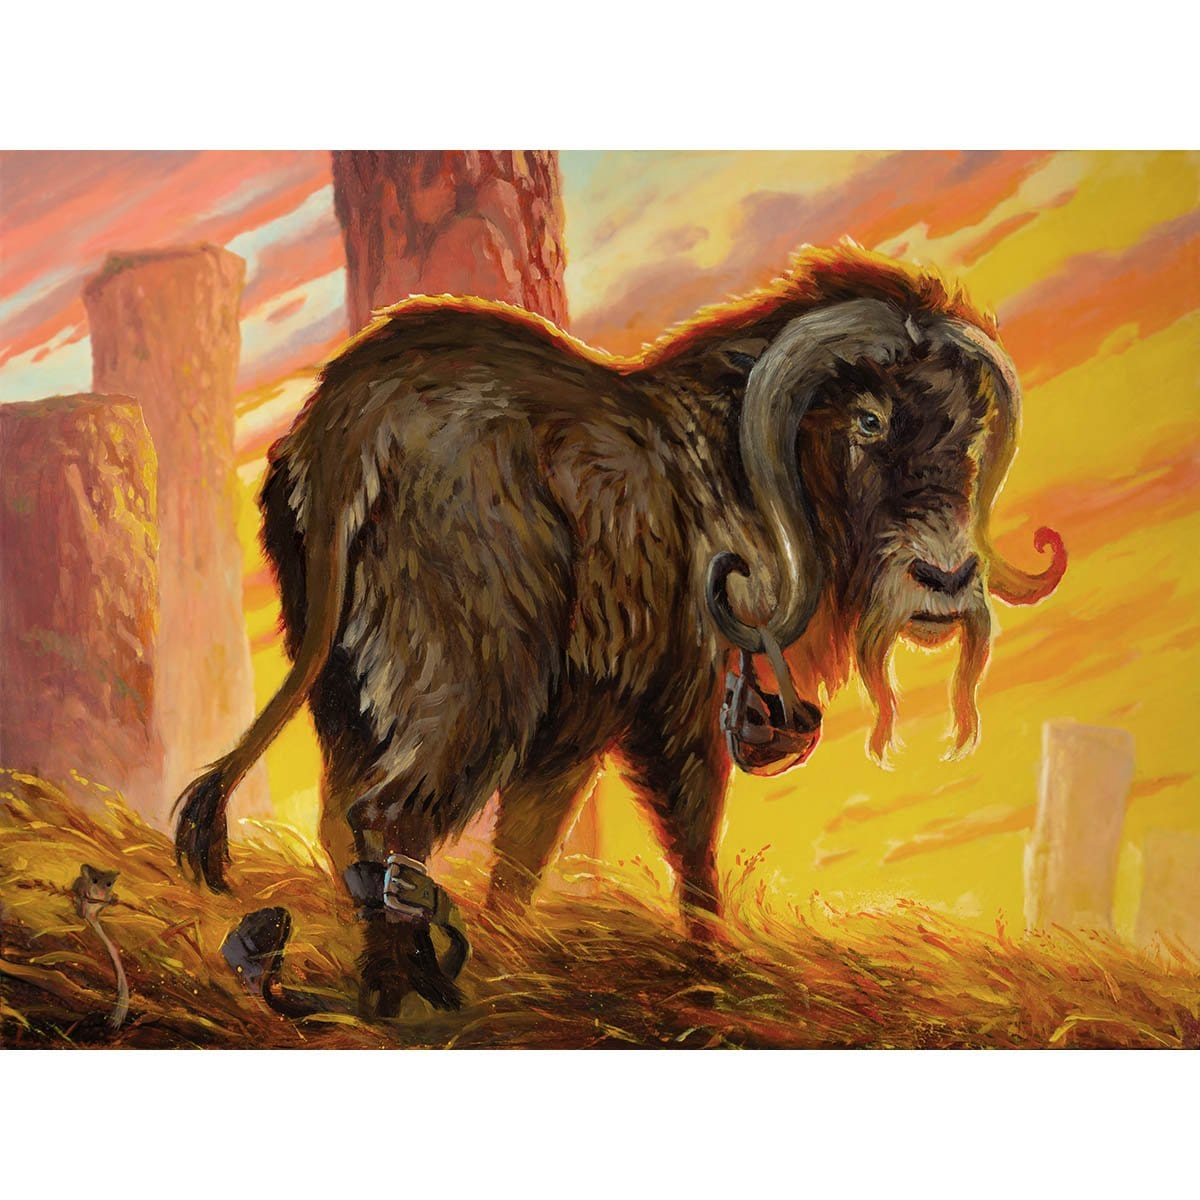 Ox Token Print - Print - Original Magic Art - Accessories for Magic the Gathering and other card games